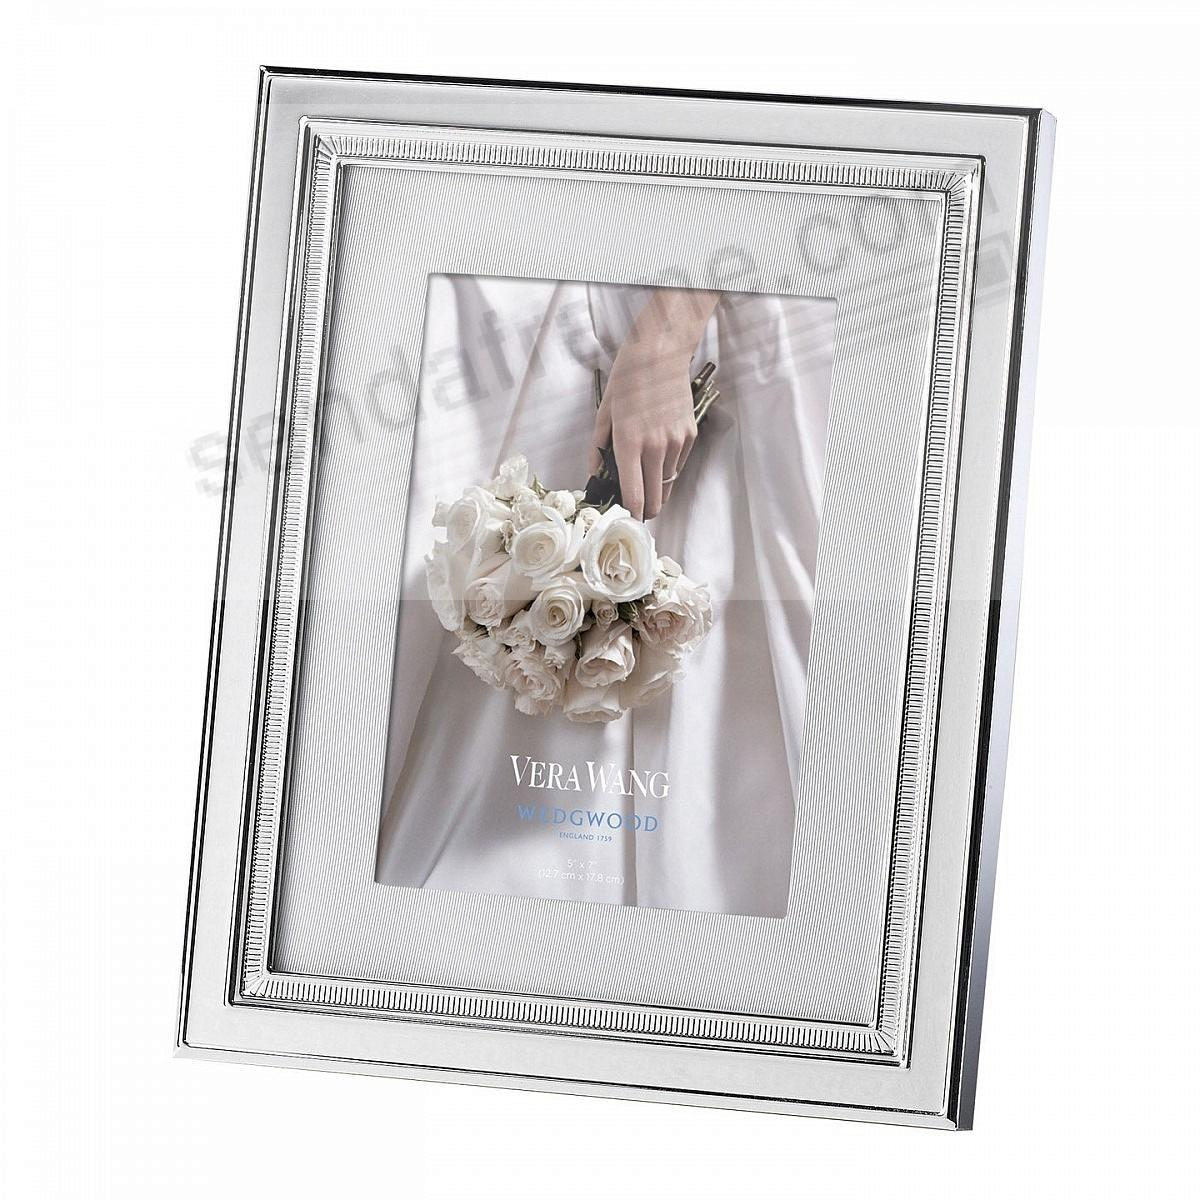 CHIME SILVER matted 5x7 frame by Vera Wang® - Picture Frames, Photo ...